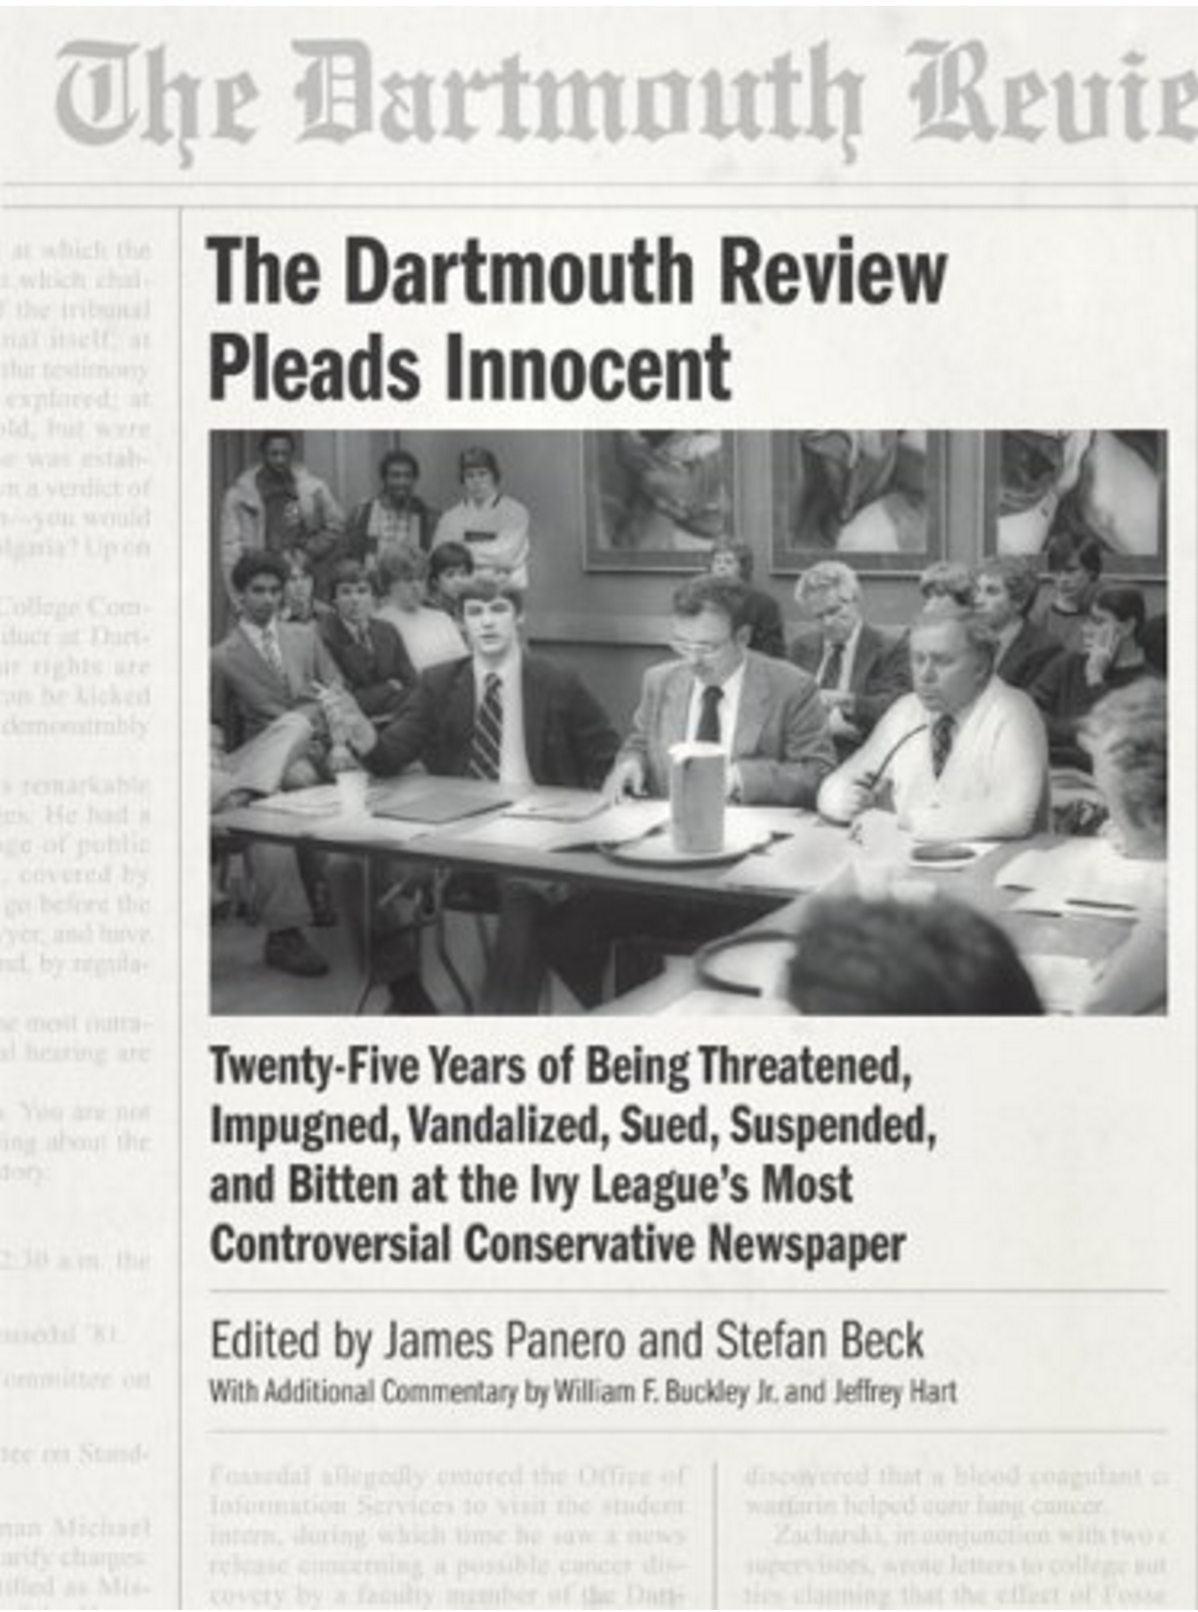 THE DARTMOUTH REVIEW PLEADS INNOCENT      E dited by James Panero and Stefan Beck